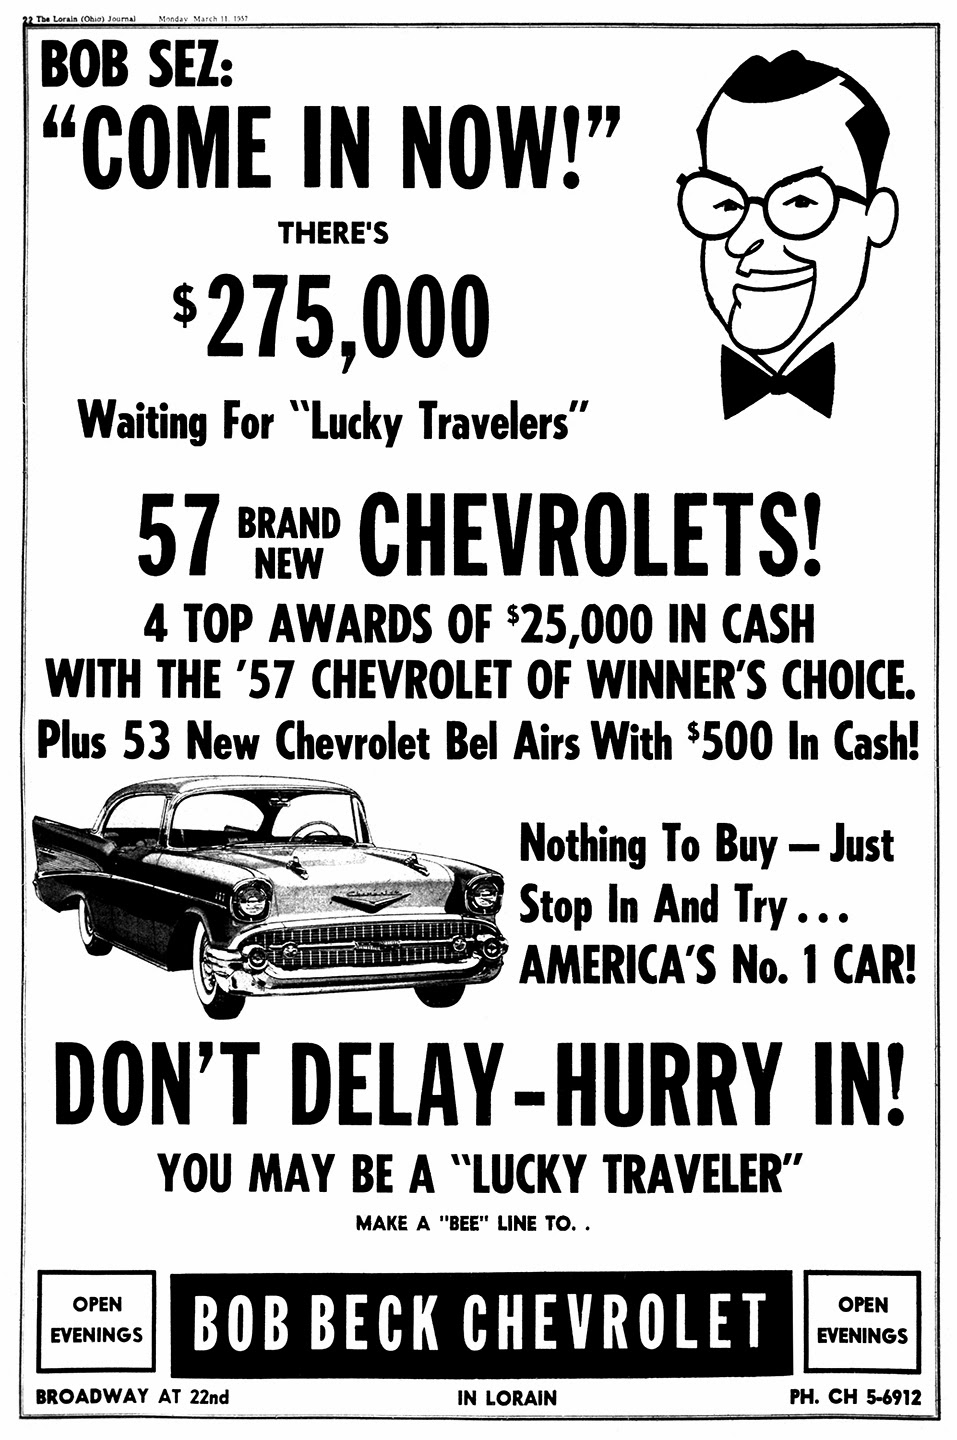 Bob Beck Chevrolet - published in the Lorain Journal - March 11, 1957